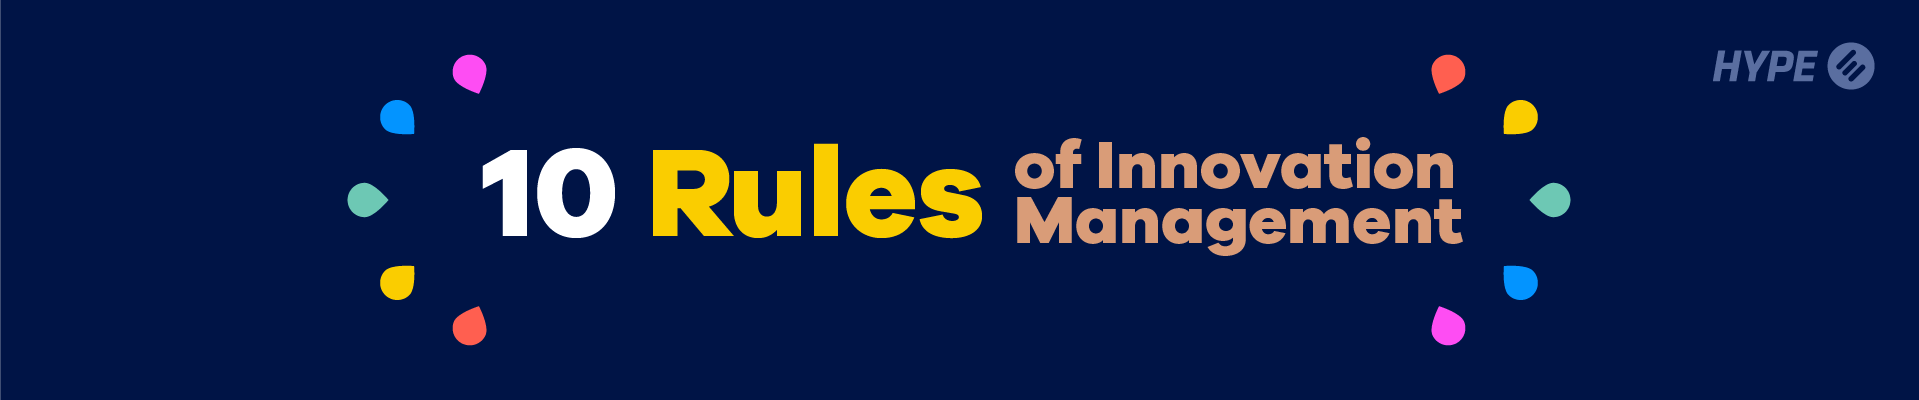 10-rules-of-innovation-banner